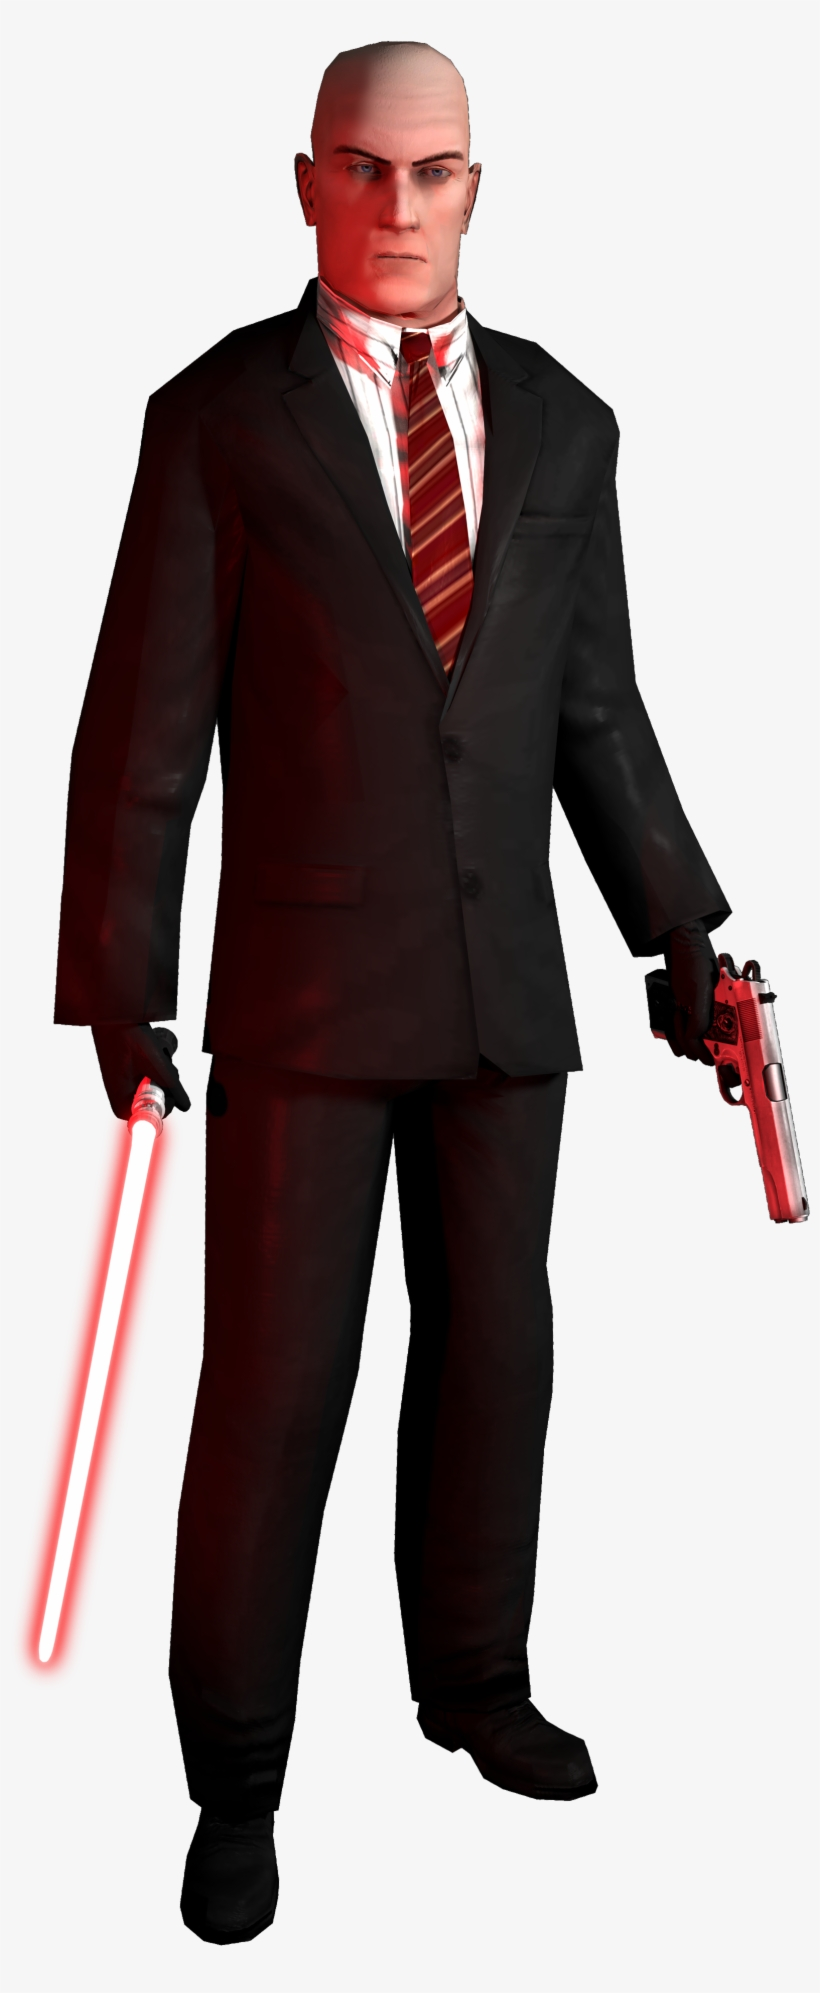 Hitman Png Image With Transparent Background Hitman Absolution